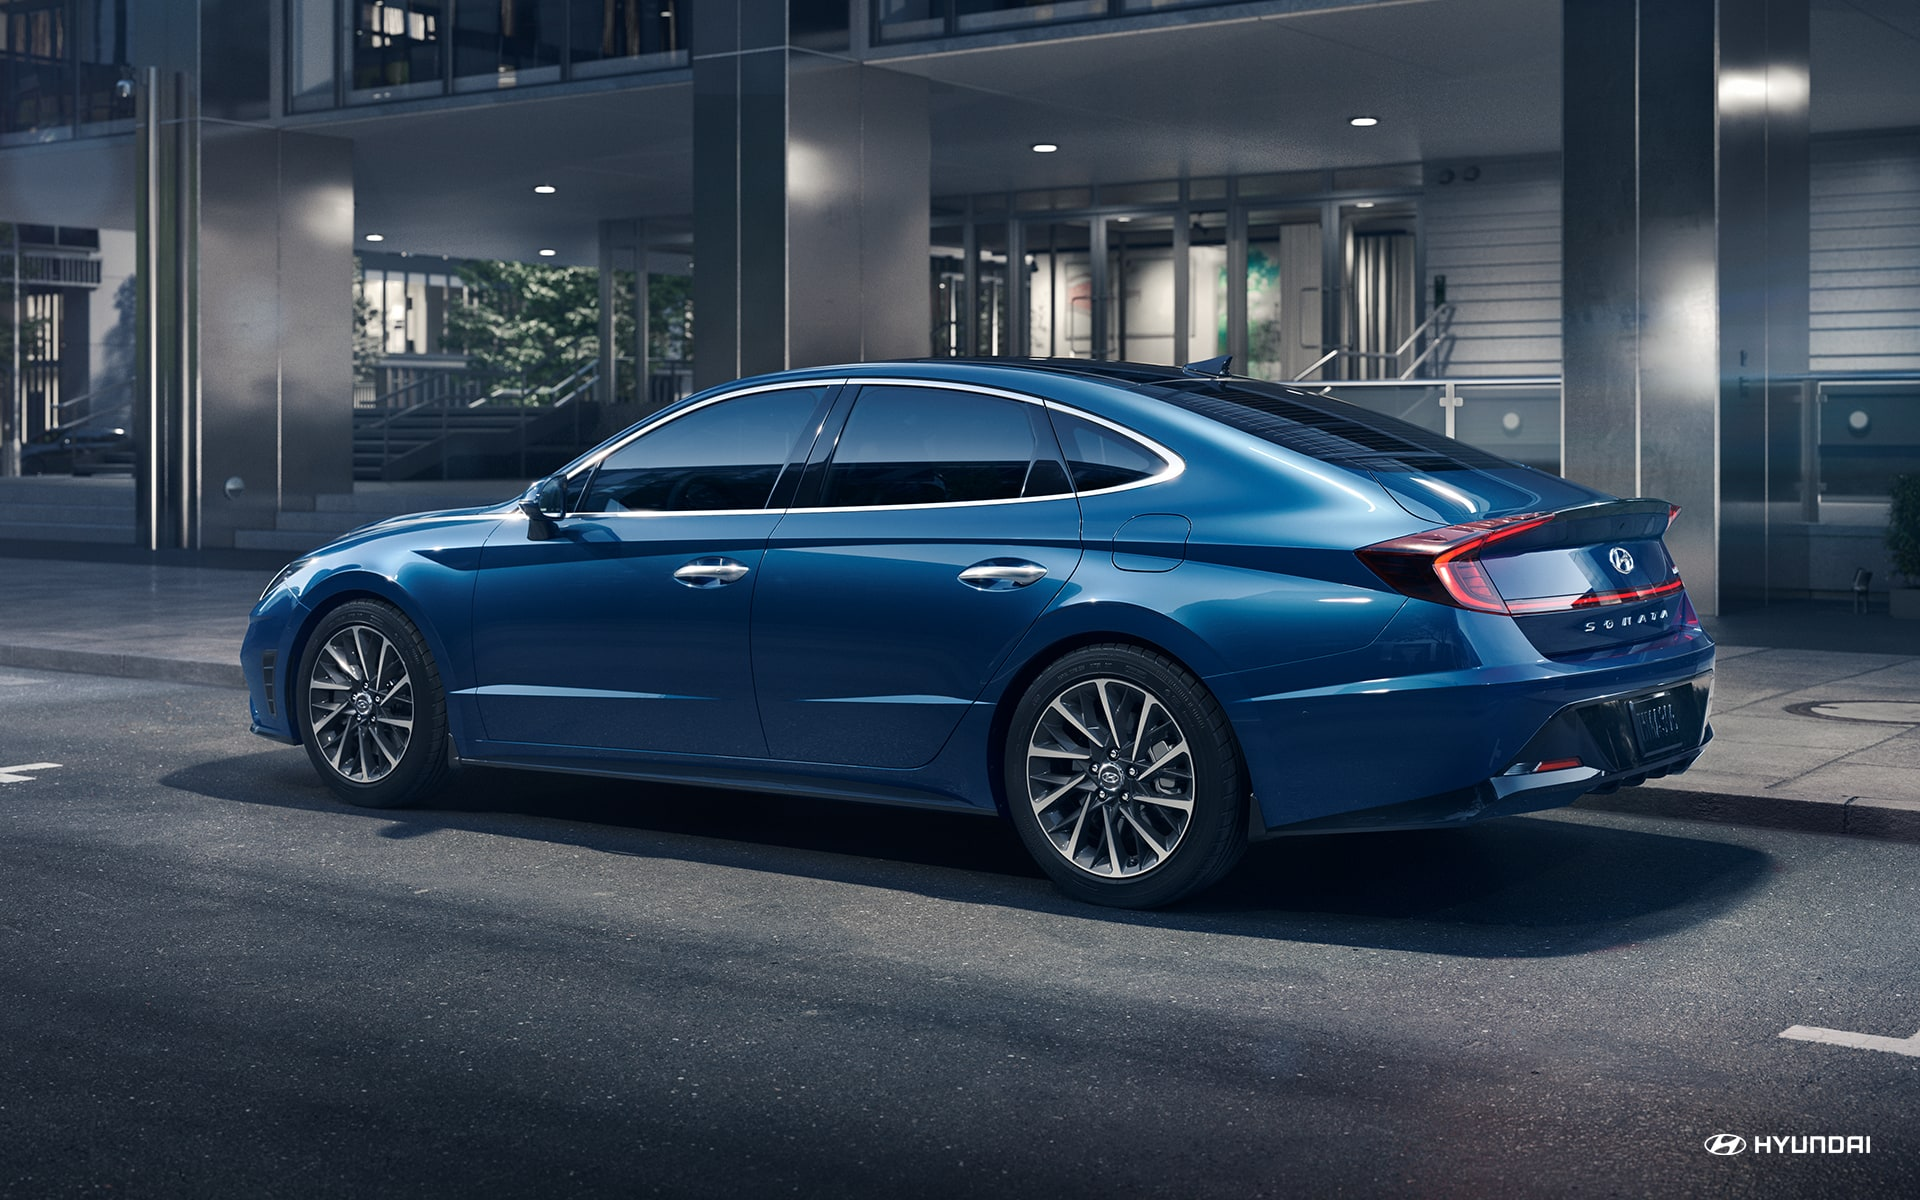 62 The Hyundai Sonata 2020 Images for Hyundai Sonata 2020